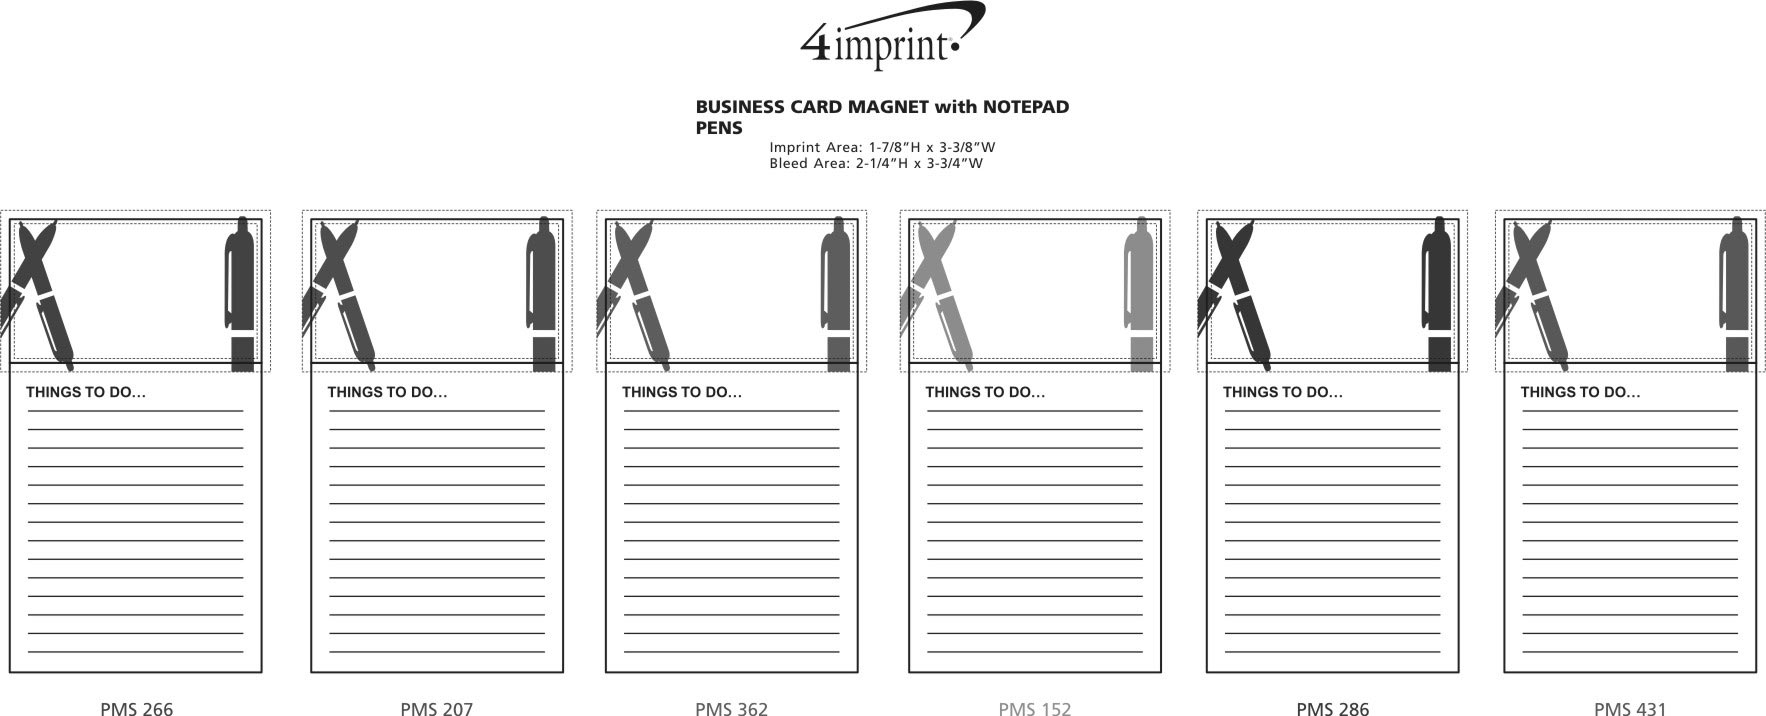 4imprint.com: Bic Business Card Magnet with Notepad - Pens 7873-PN